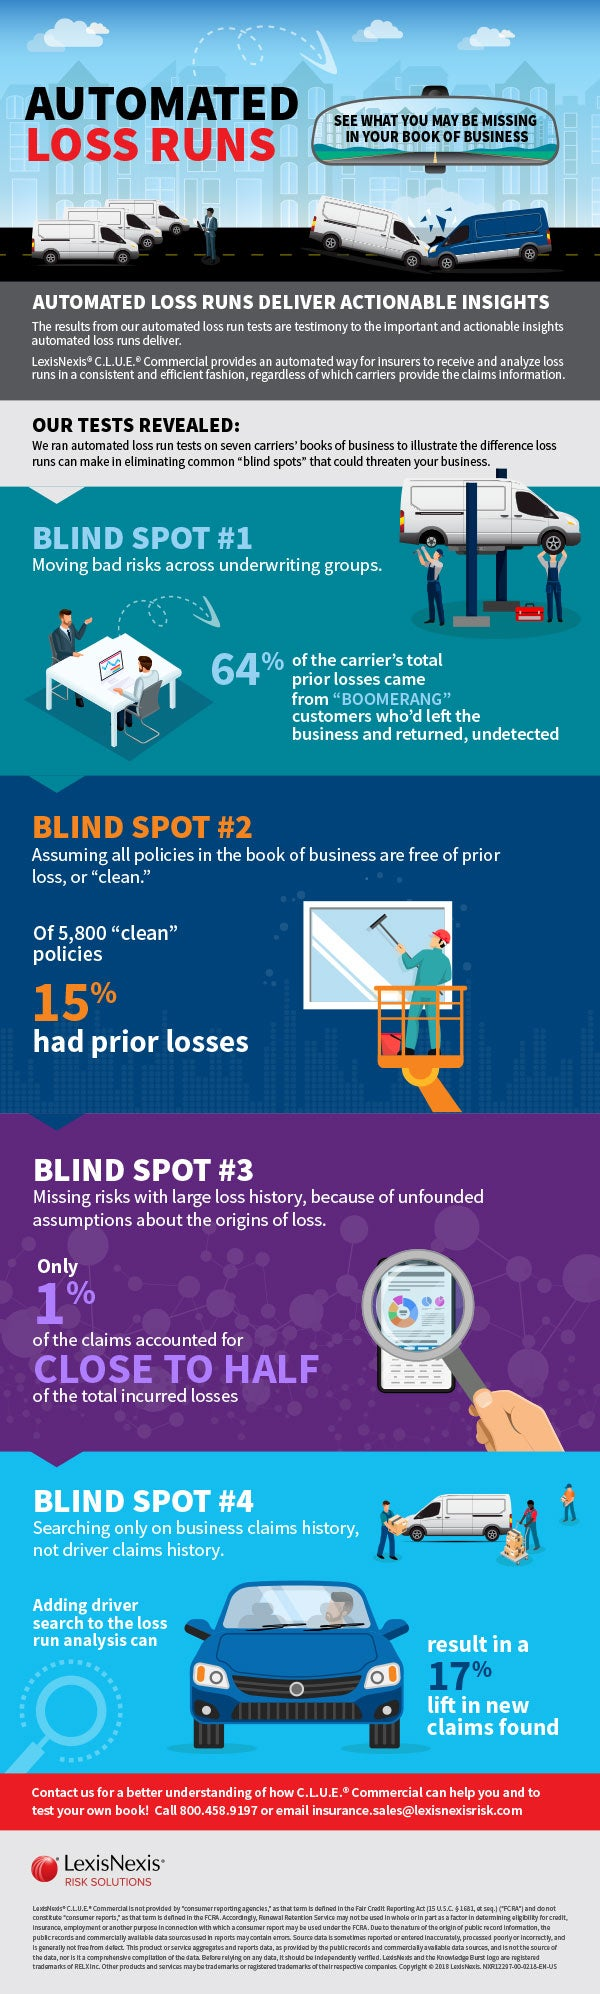 CLUE Commercial Blind Spot Infographic